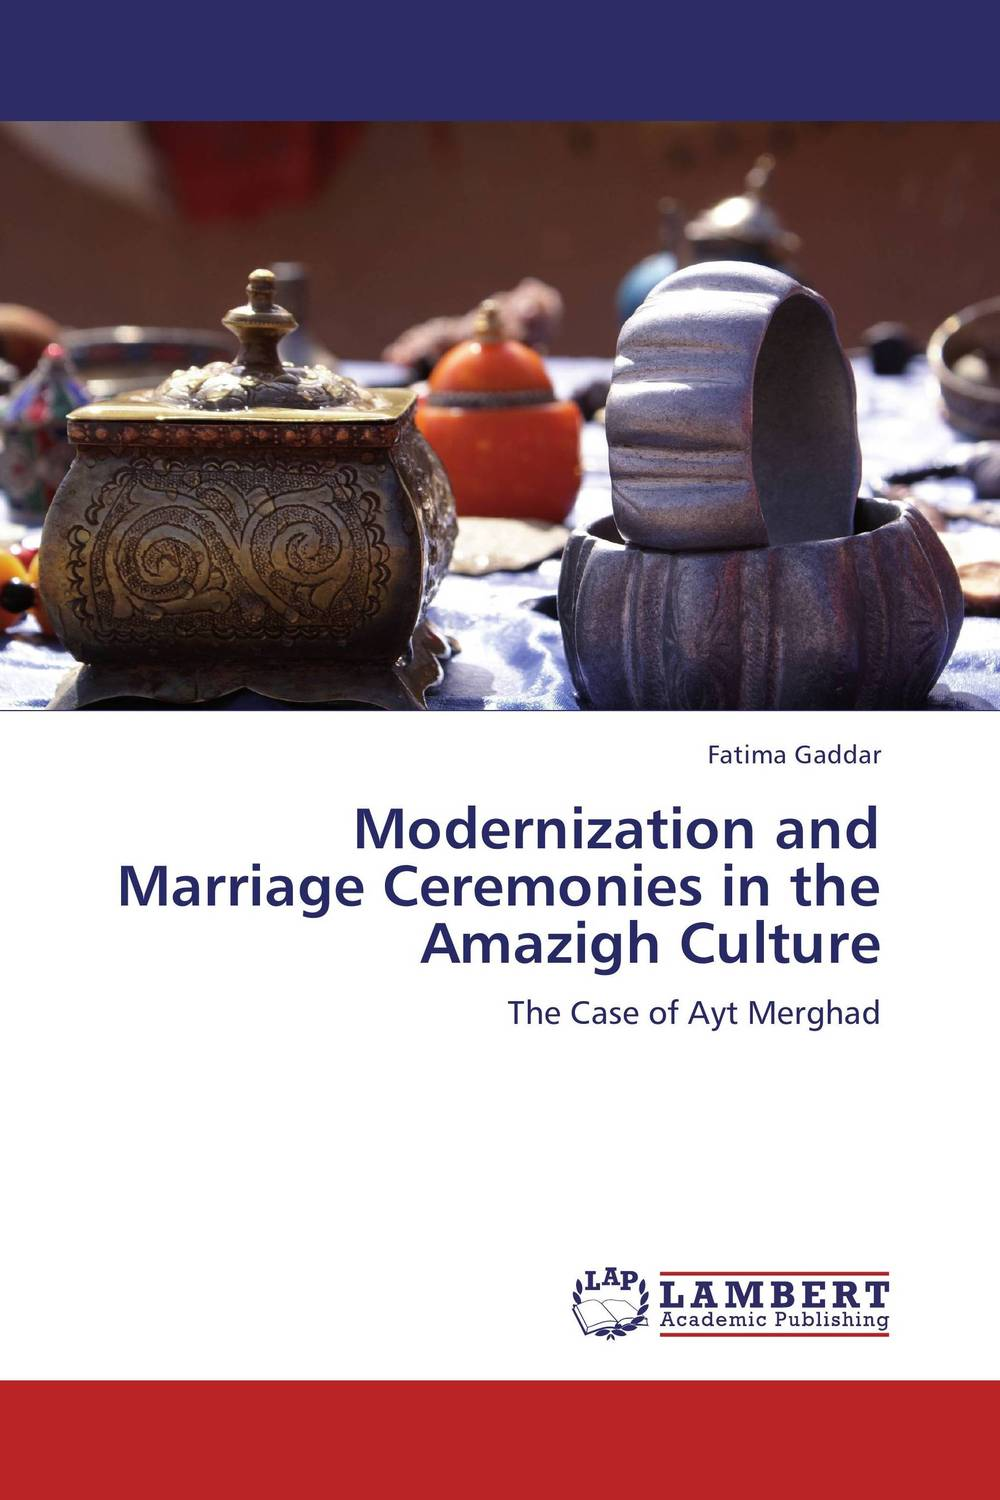 Modernization and Marriage Ceremonies in the Amazigh Culture linguistic diversity and social justice